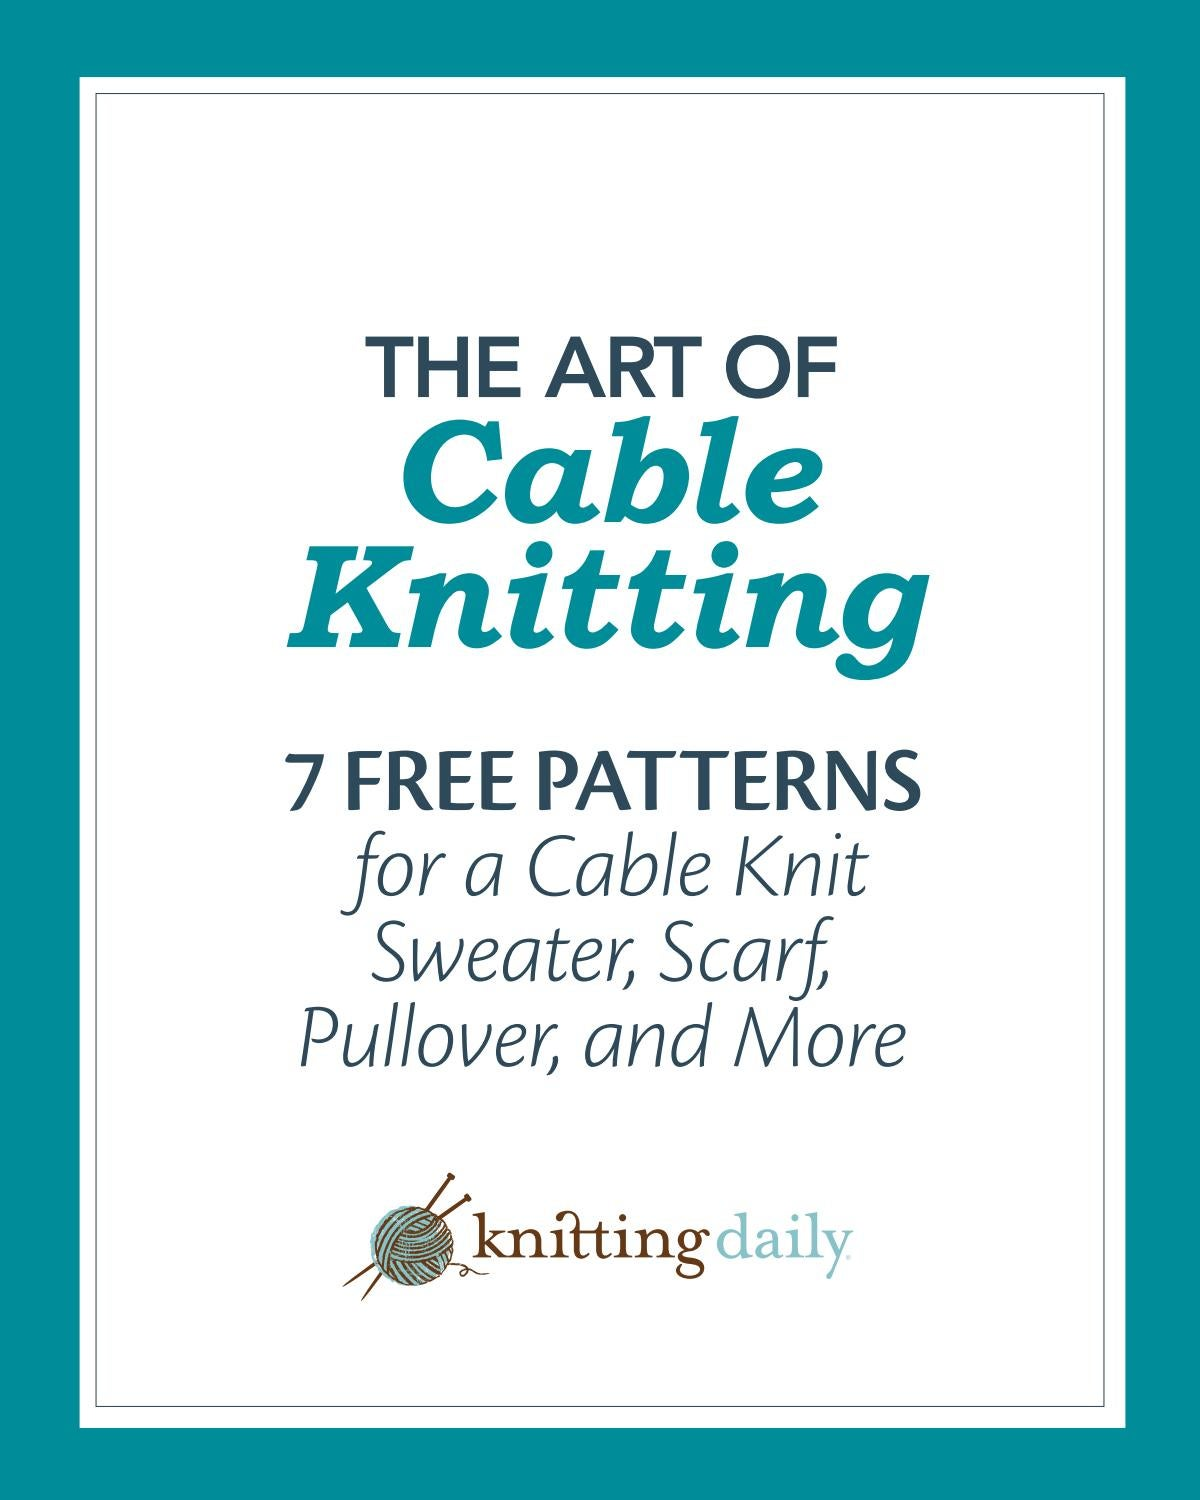 7 free cable knitting patterns by anne lachaise - issuu